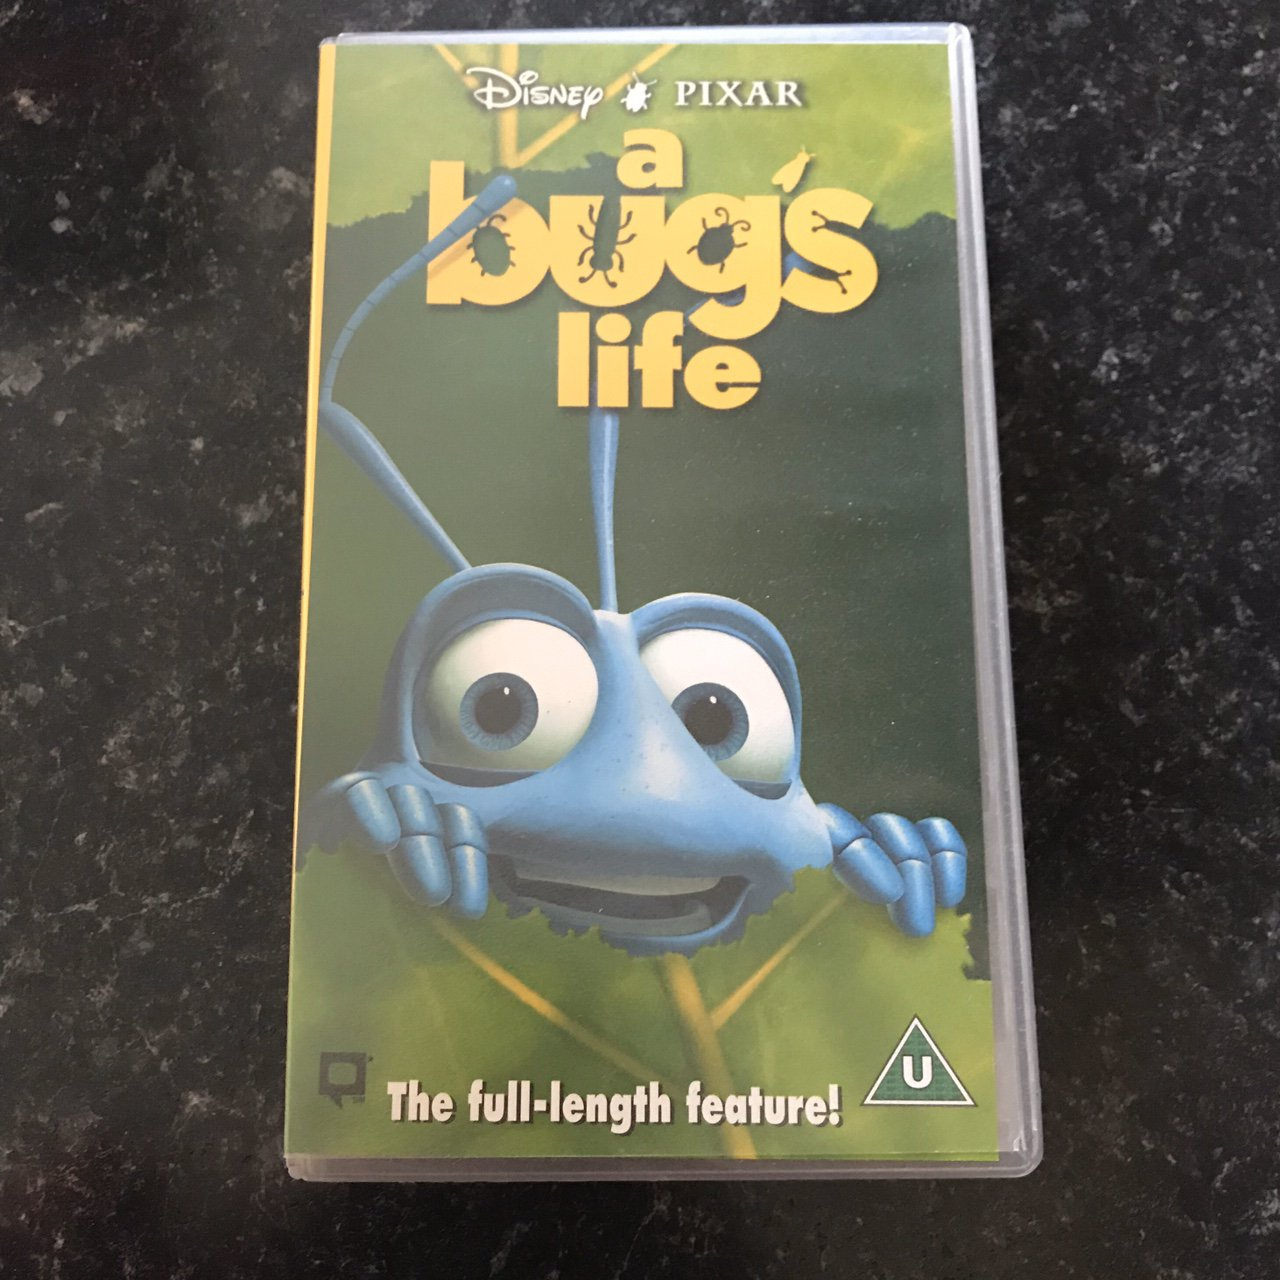 Disney Pixar A Bugs Life Vhs Video Tape Perfect Depop